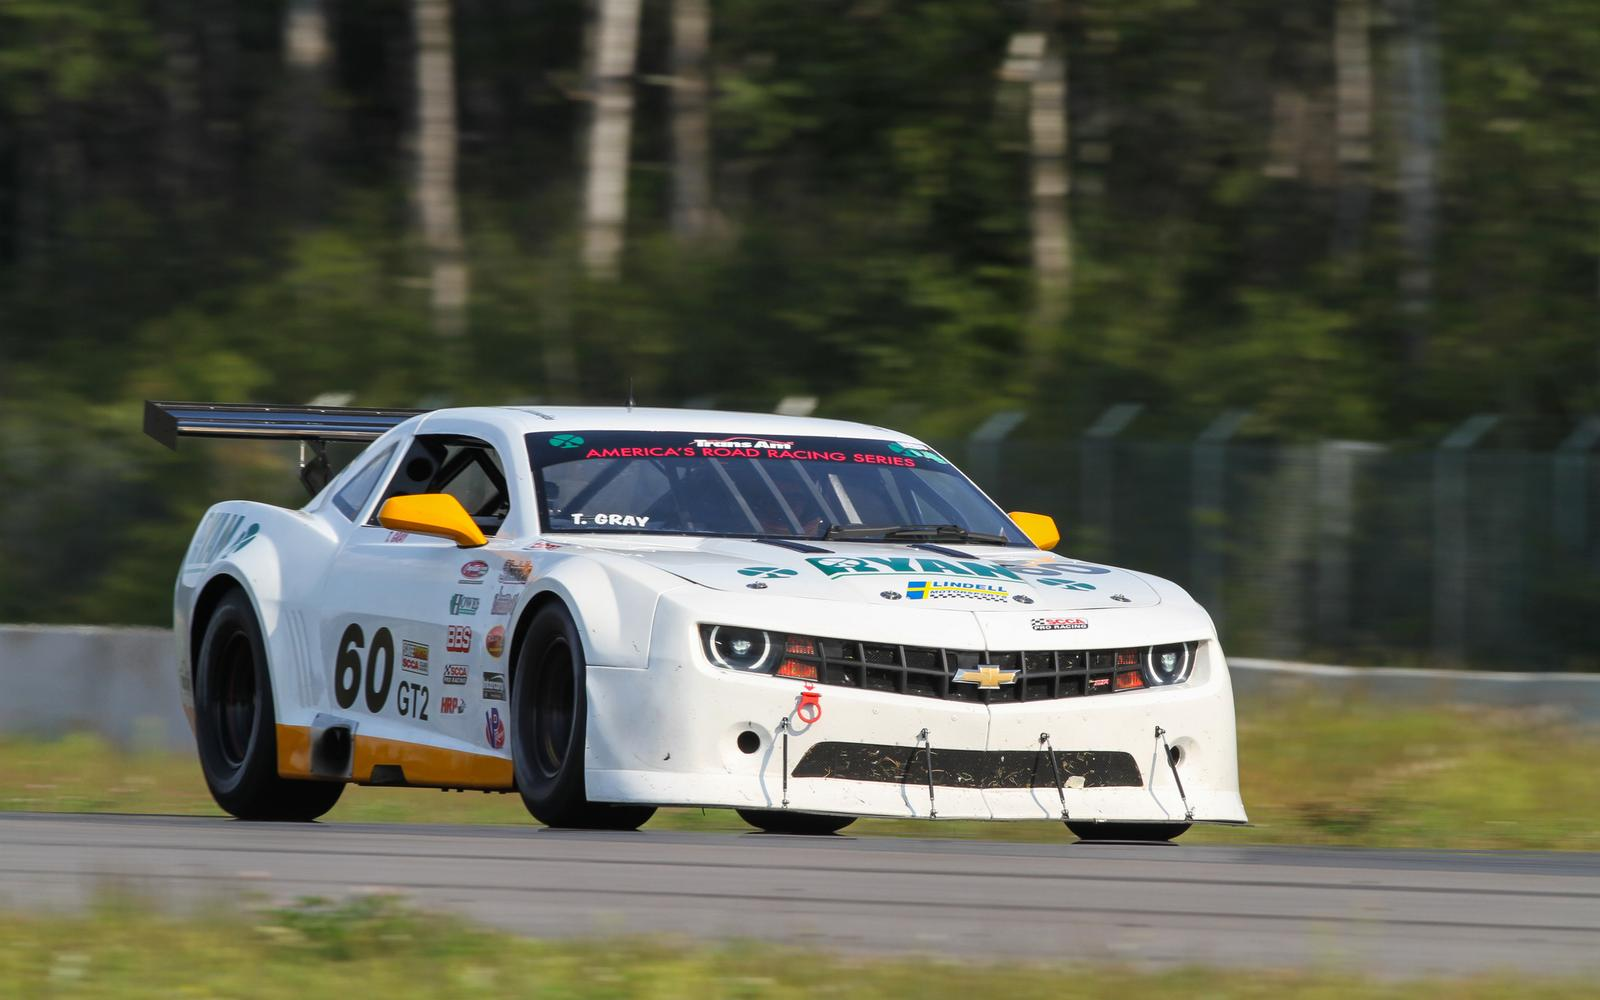 Trans Am announces Ryan Companies Independence Day Classic